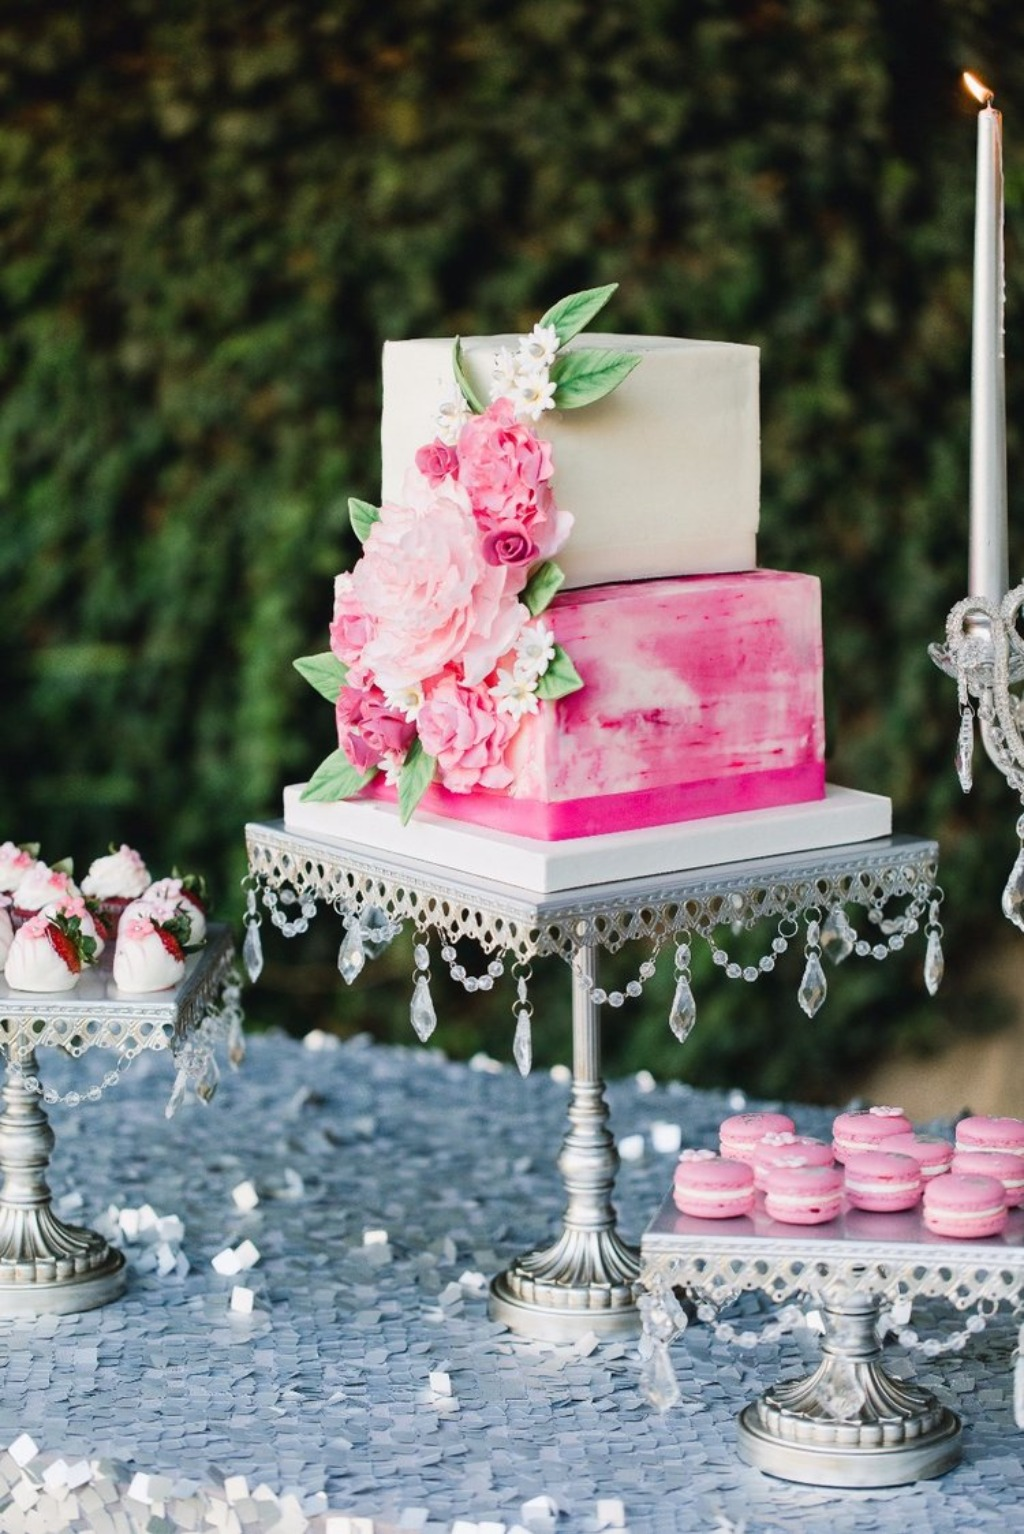 Pretty & Pink! Square Tiered Wedding Cake on Antique Silver Chandelier Cake & Dessert Stands created and sold by Opulent Treasures